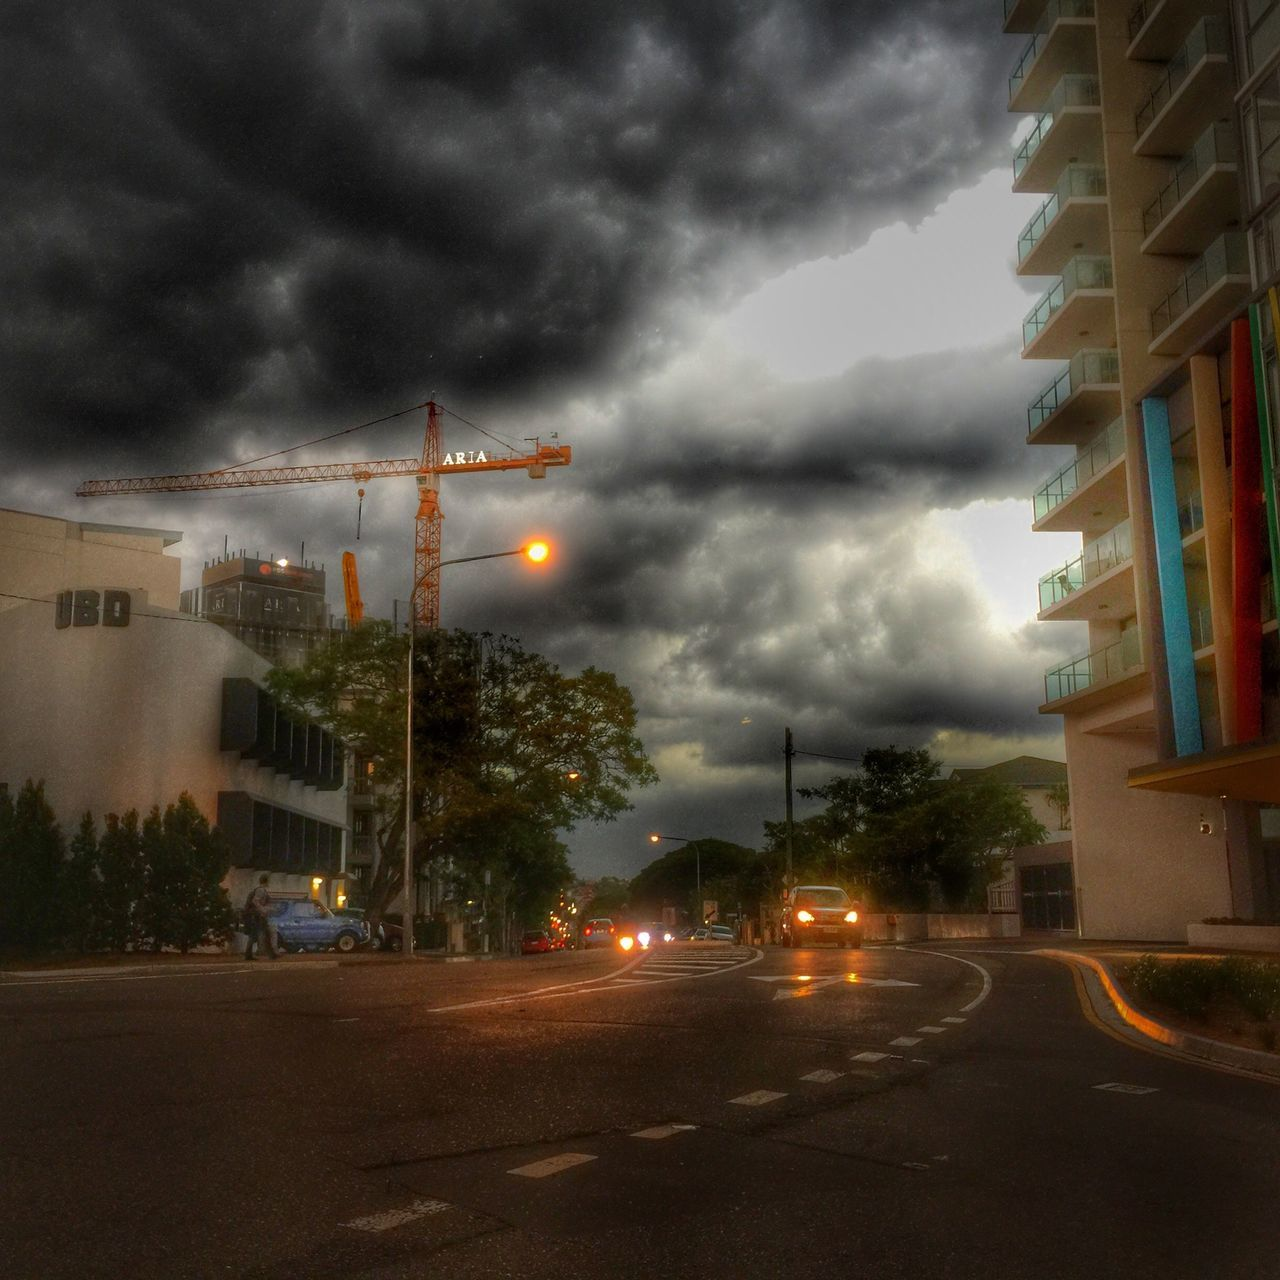 cloud - sky, sky, storm cloud, weather, built structure, architecture, dramatic sky, tree, street, outdoors, car, thunderstorm, transportation, no people, building exterior, road, illuminated, city, nature, night